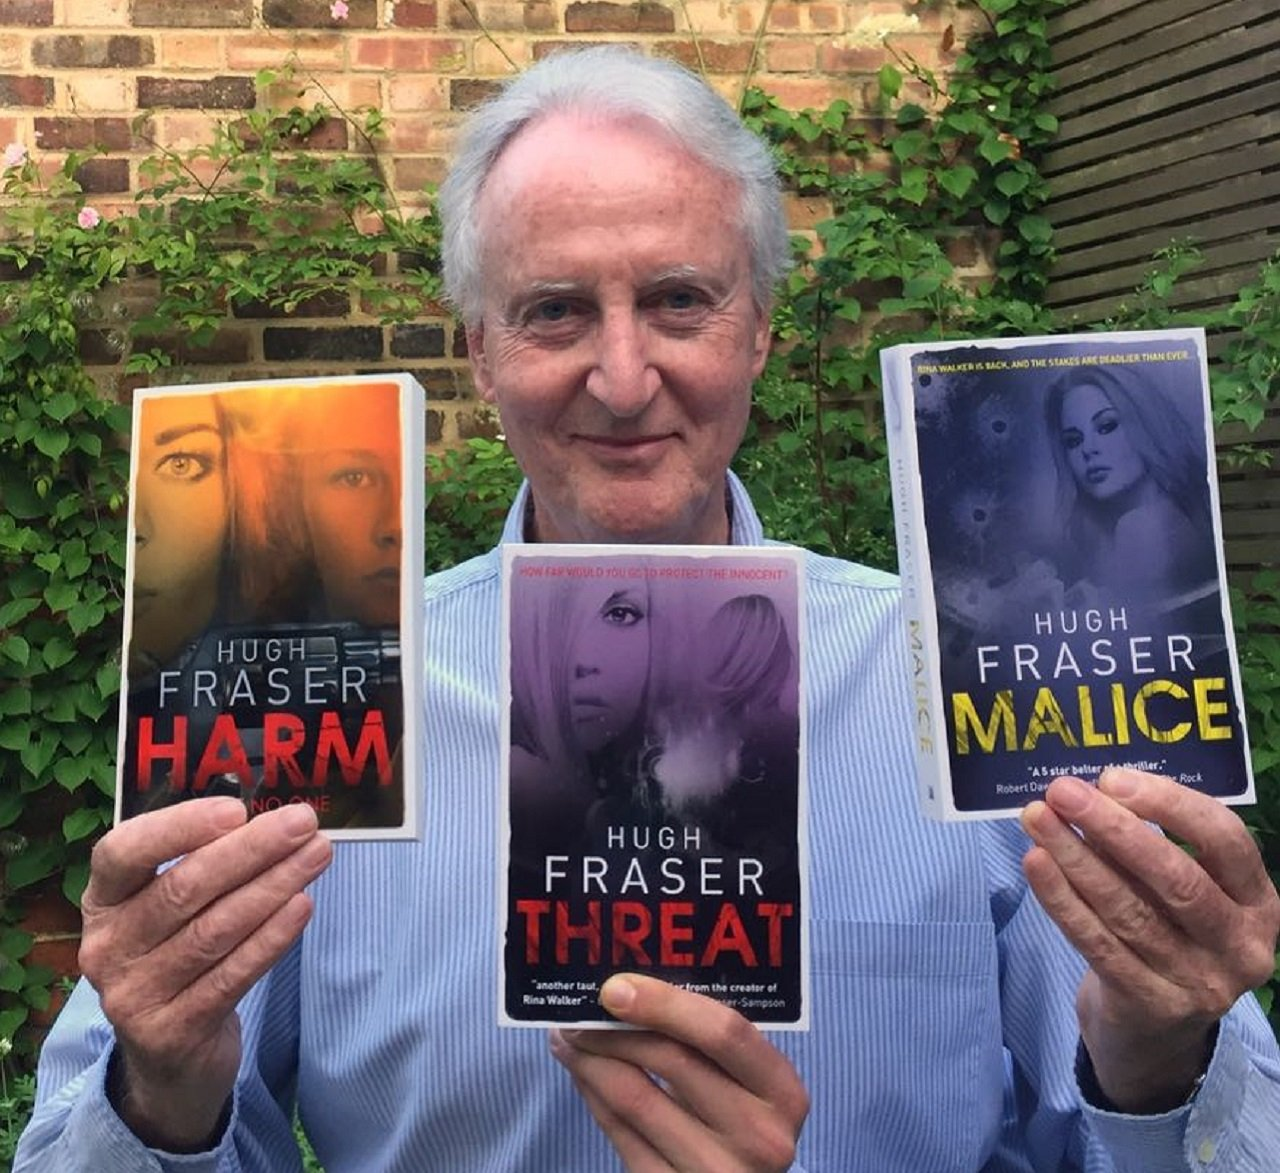 Poirot's Partner Hugh Fraser Releases The Third Instalment In Crime Thriller Series